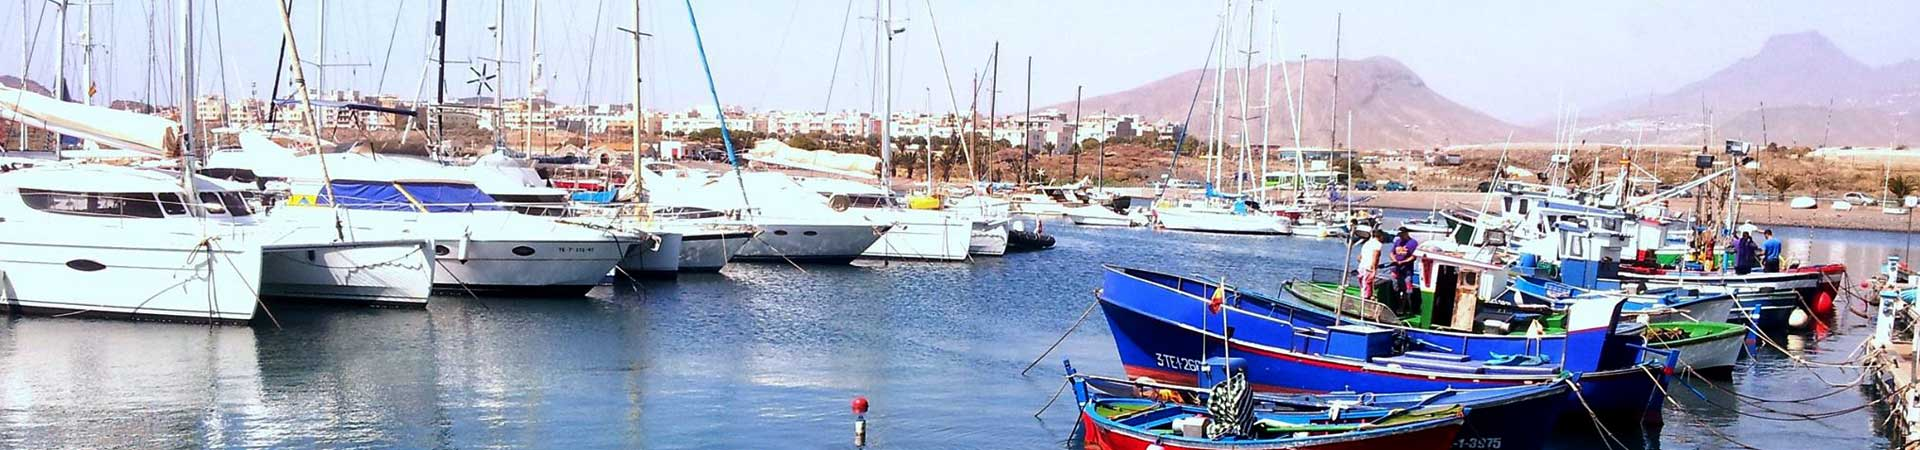 https://www.goodmorningtenerife.com/wp-content/uploads/2015/04/02_Marina-del-Sur_slide.jpg